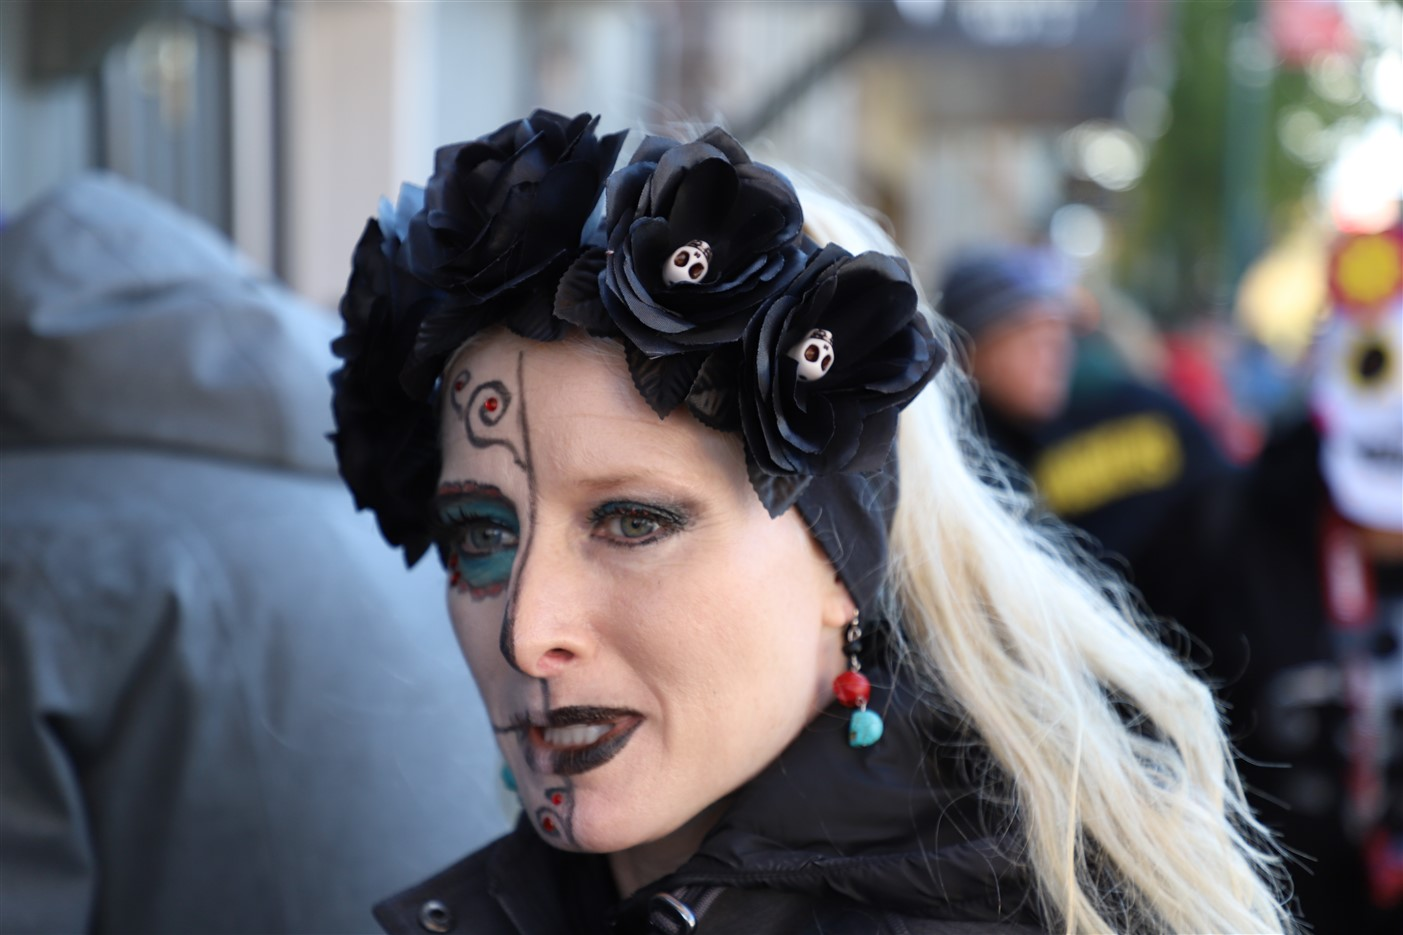 2018 11 03 185 Cleveland Day of the Dead Parade.jpg